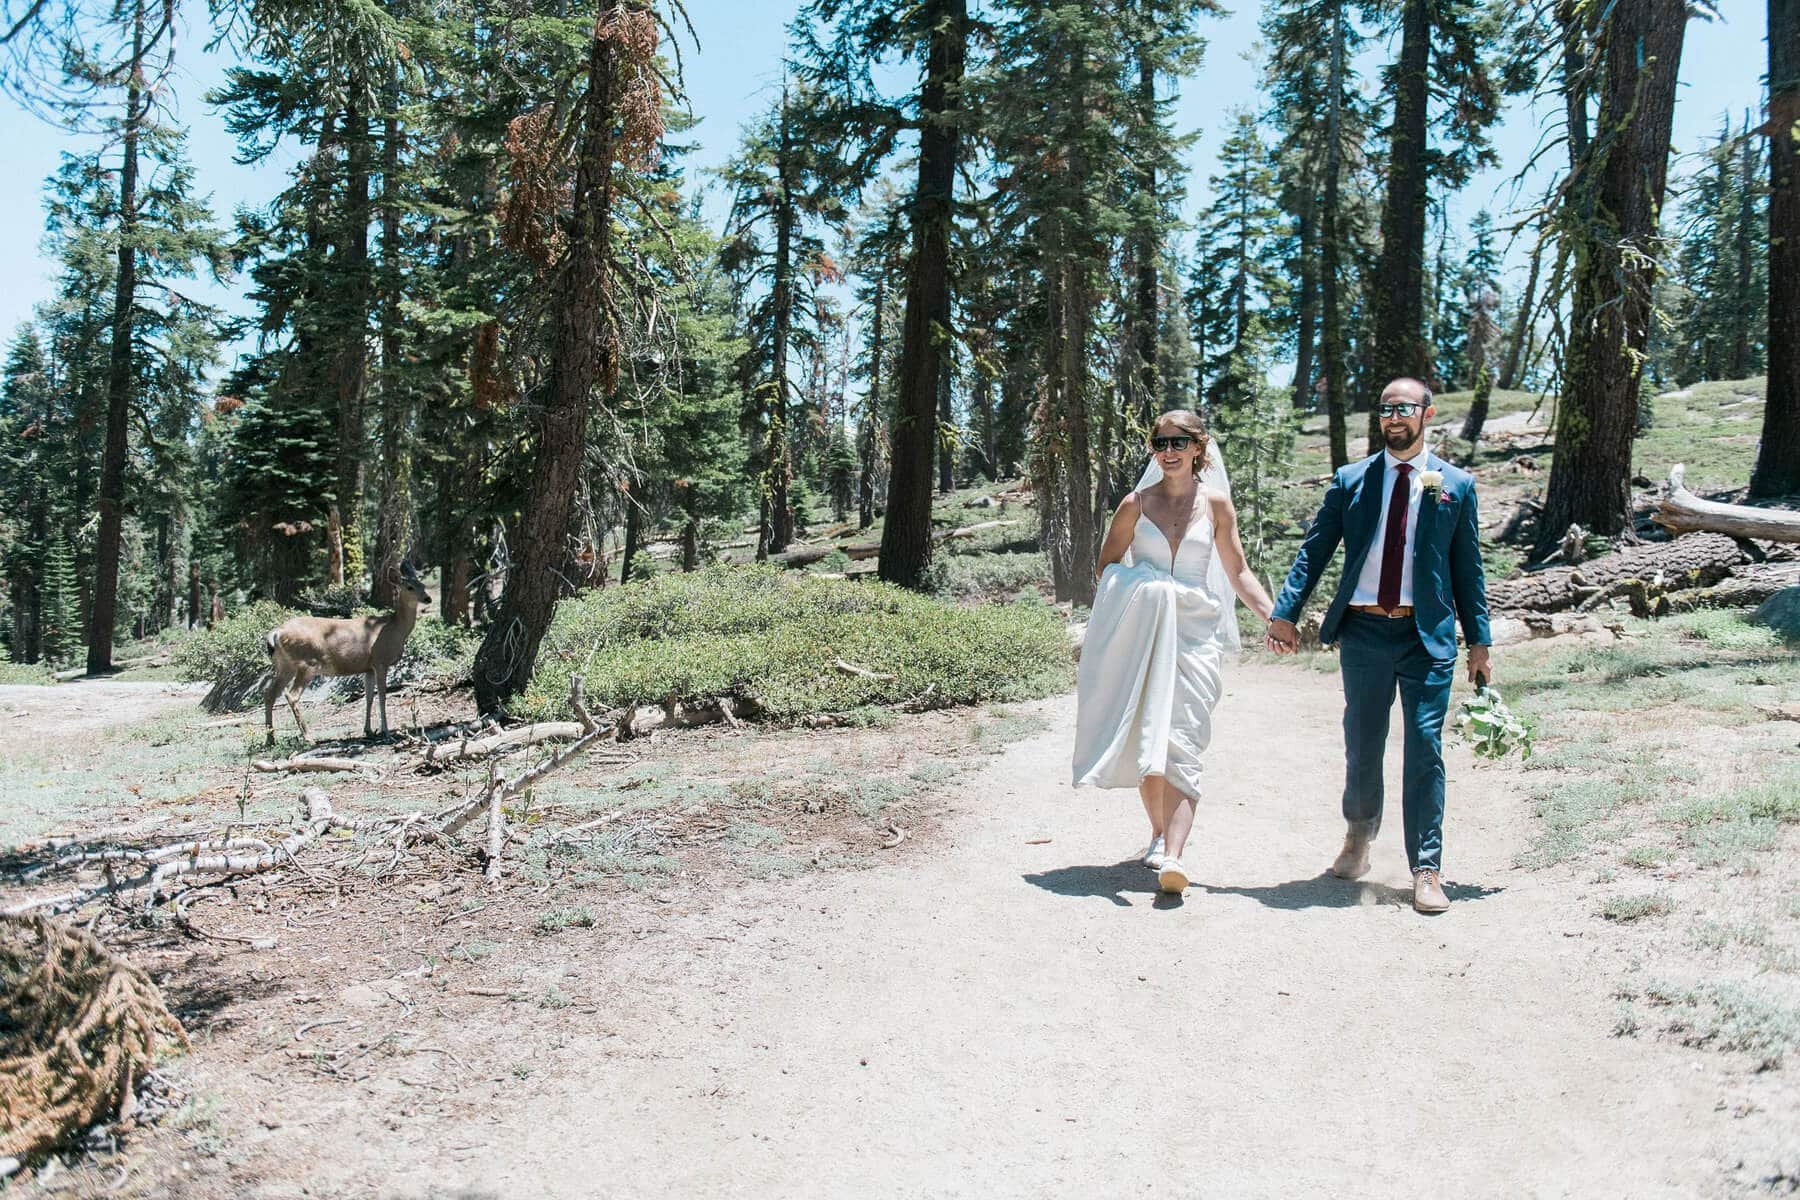 bride and groom walking on trail next to deer on way to taft point photo shoot